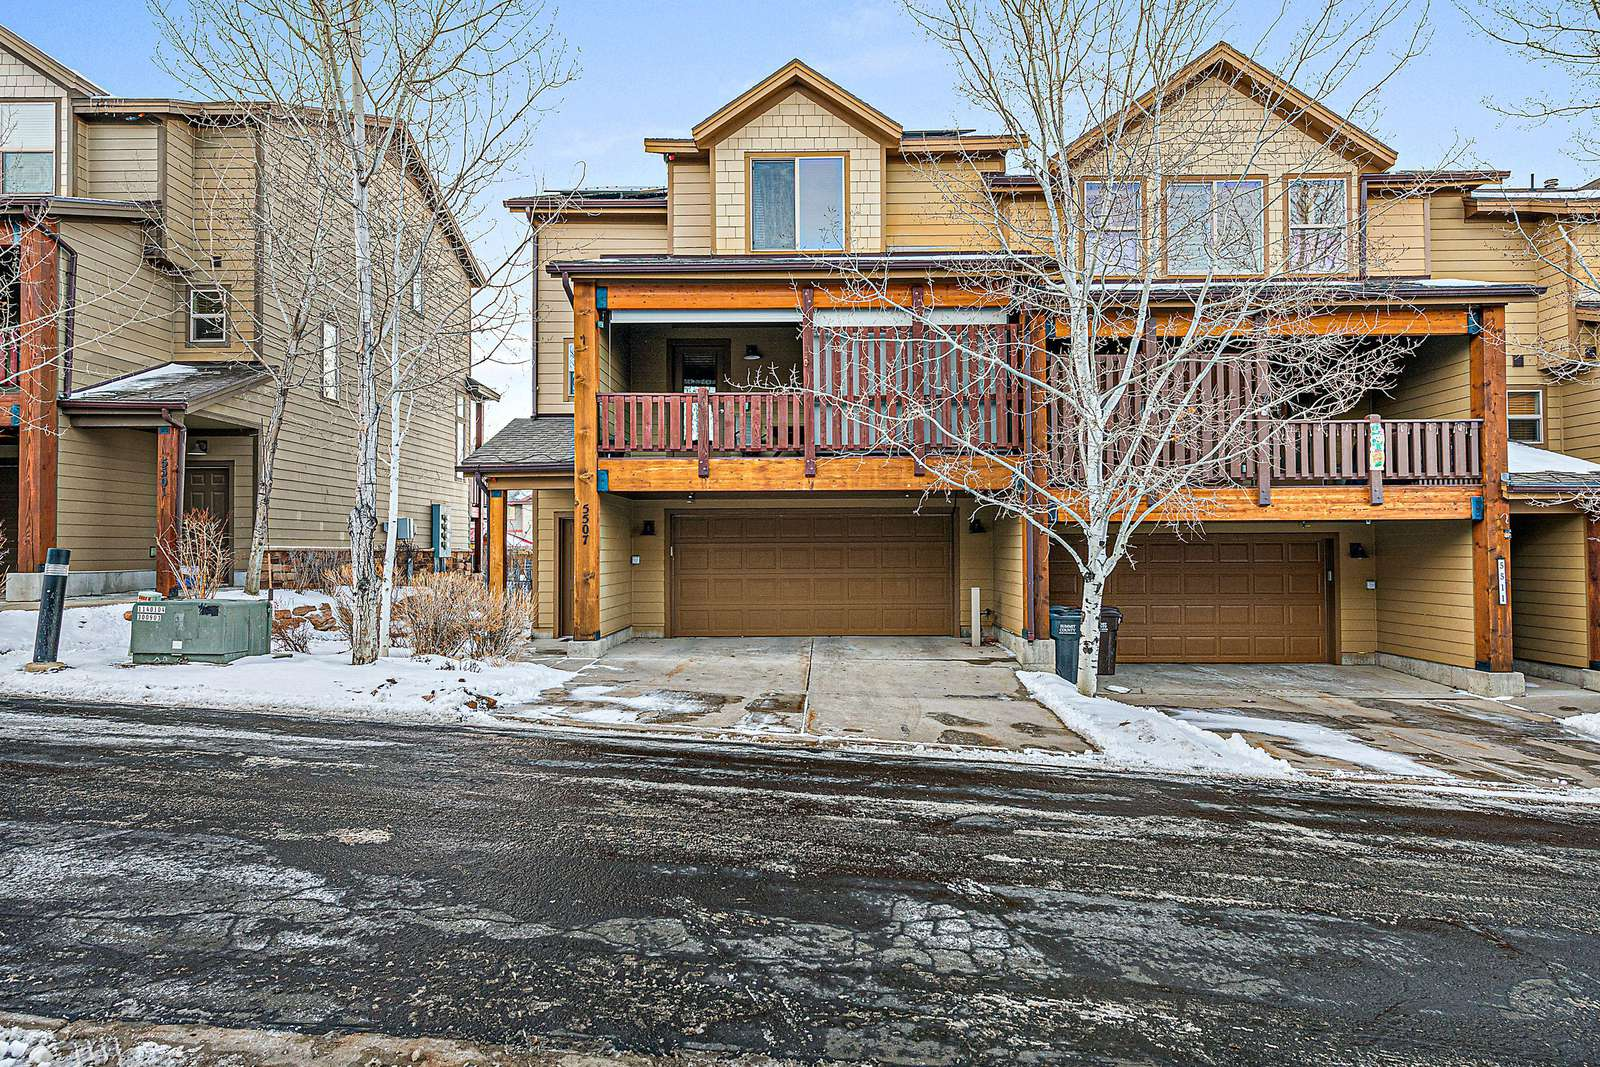 Townhome with private garage